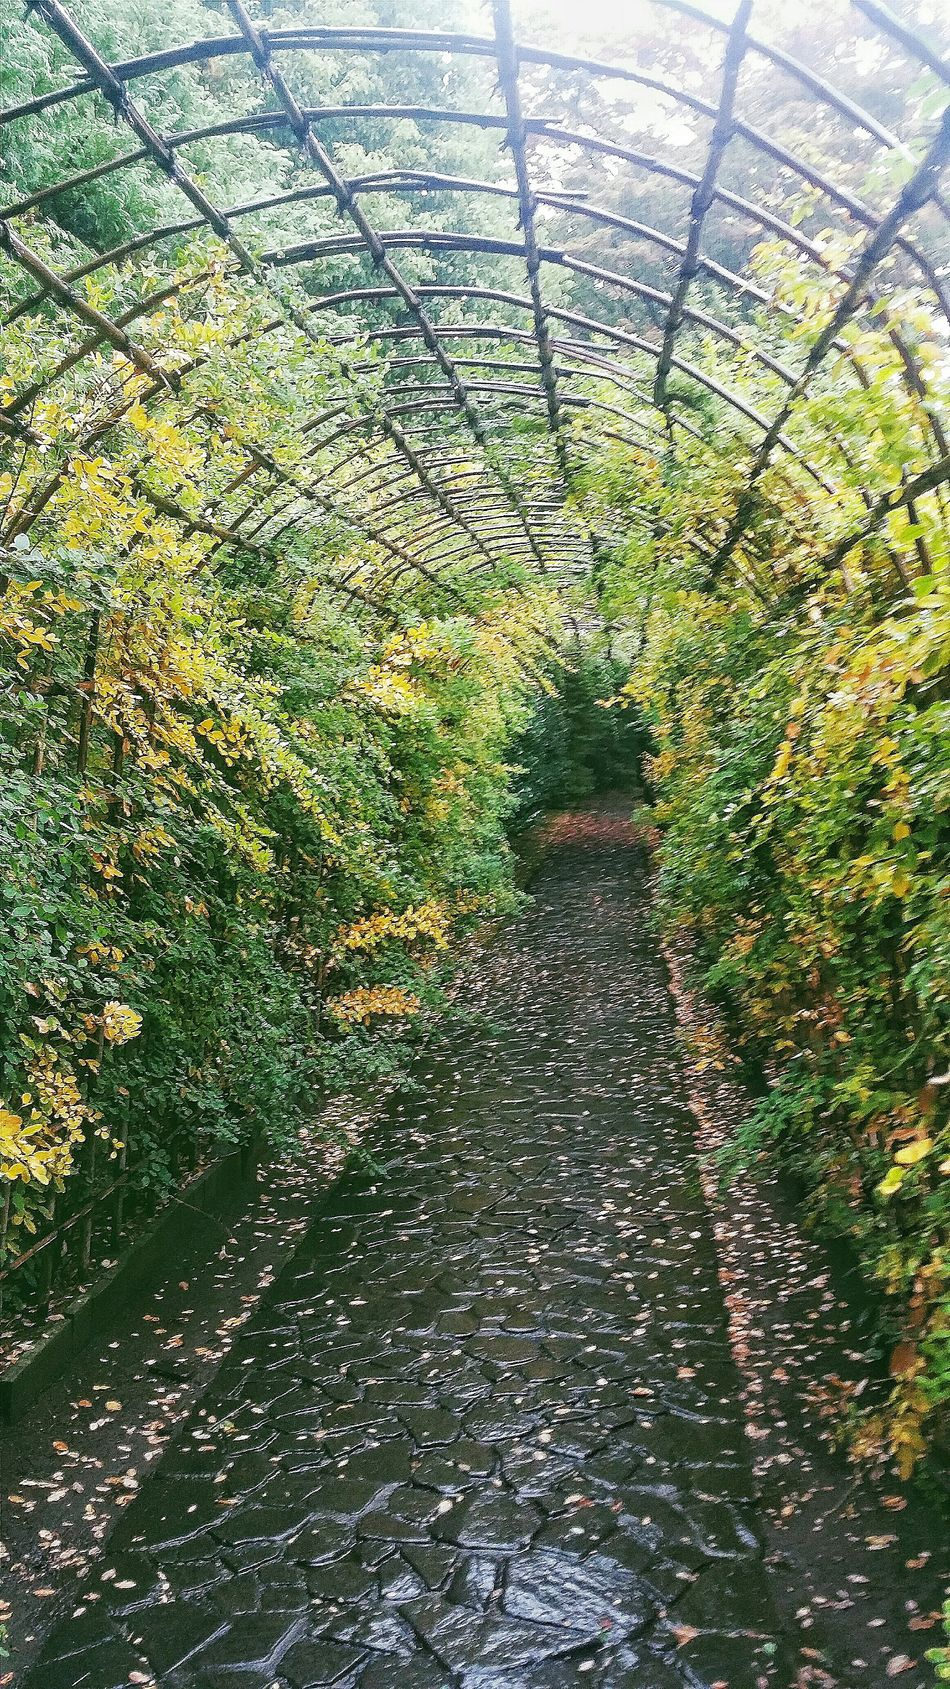 At one end of the Hagi Tunnel is a canopy, one which would be covered in wisteria in summer. Fall 秋 Autumn Autumn 2015 Tokyo Autumn 2015 Changing Seasons Tonogayato Teien Hagi Tunnel Nature Naturelover EyeEm NatureLover Naturecollection Naturephotography Urban Nature Tokyo Nature 1913 Eguchi Teijo 1929 Iwasaki Yataro Rain Tokyo Japan Travel Photography